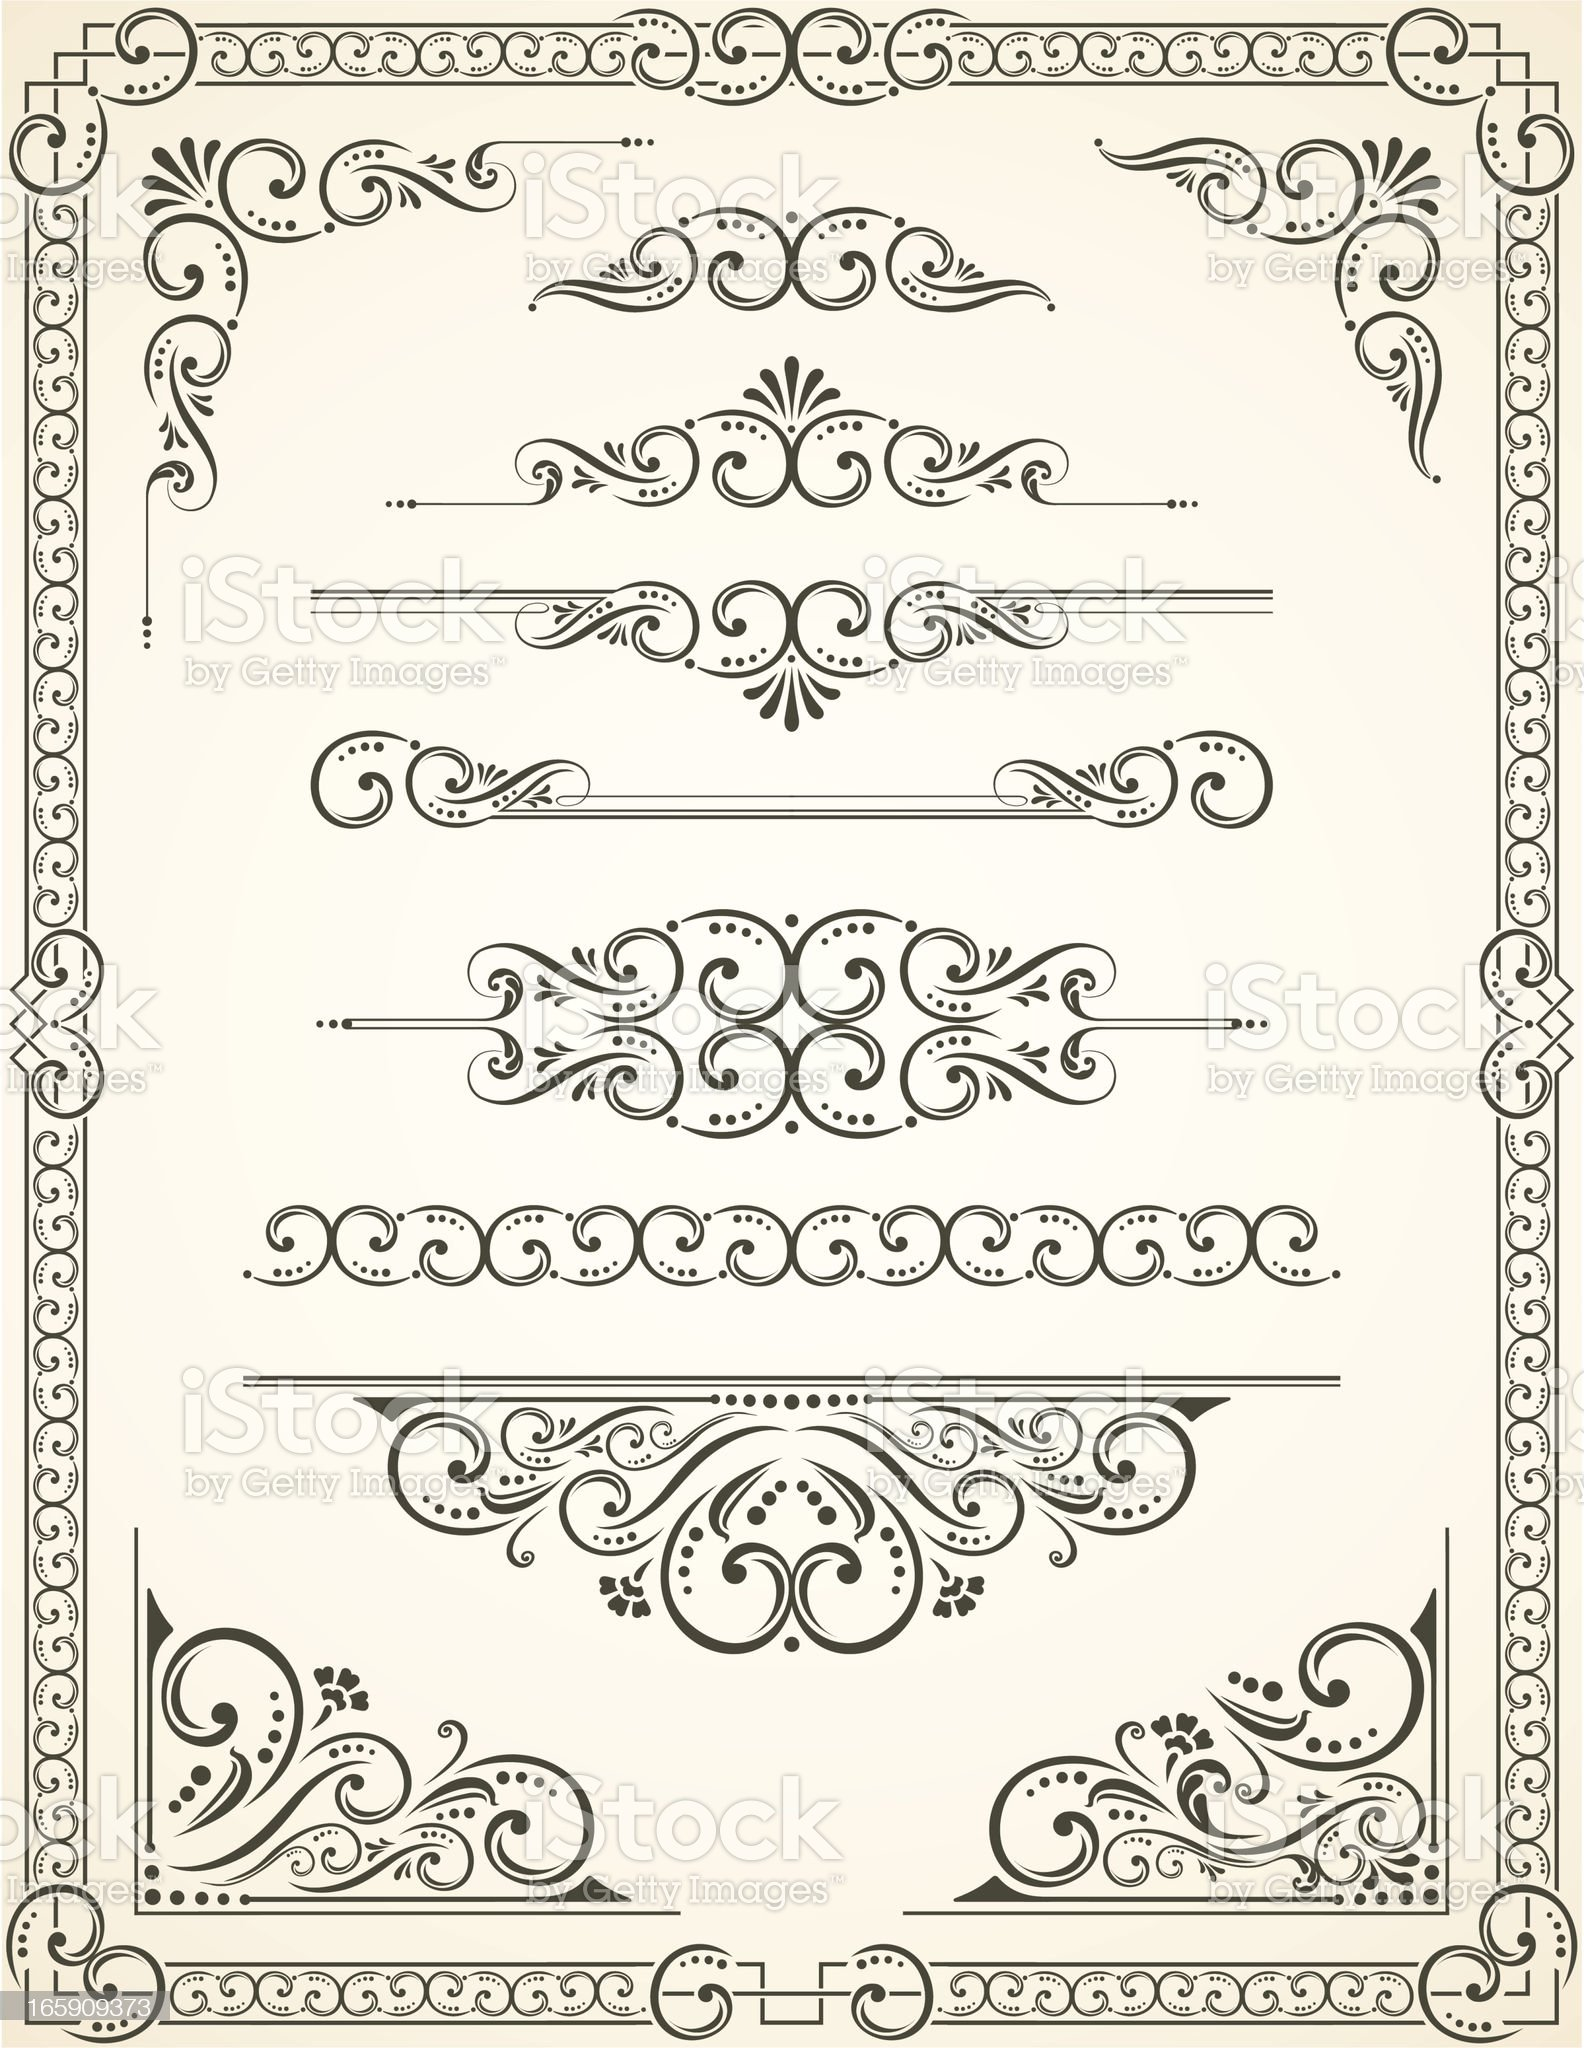 Vectorized Scroll Set and Blanc Certificate royalty-free stock vector art